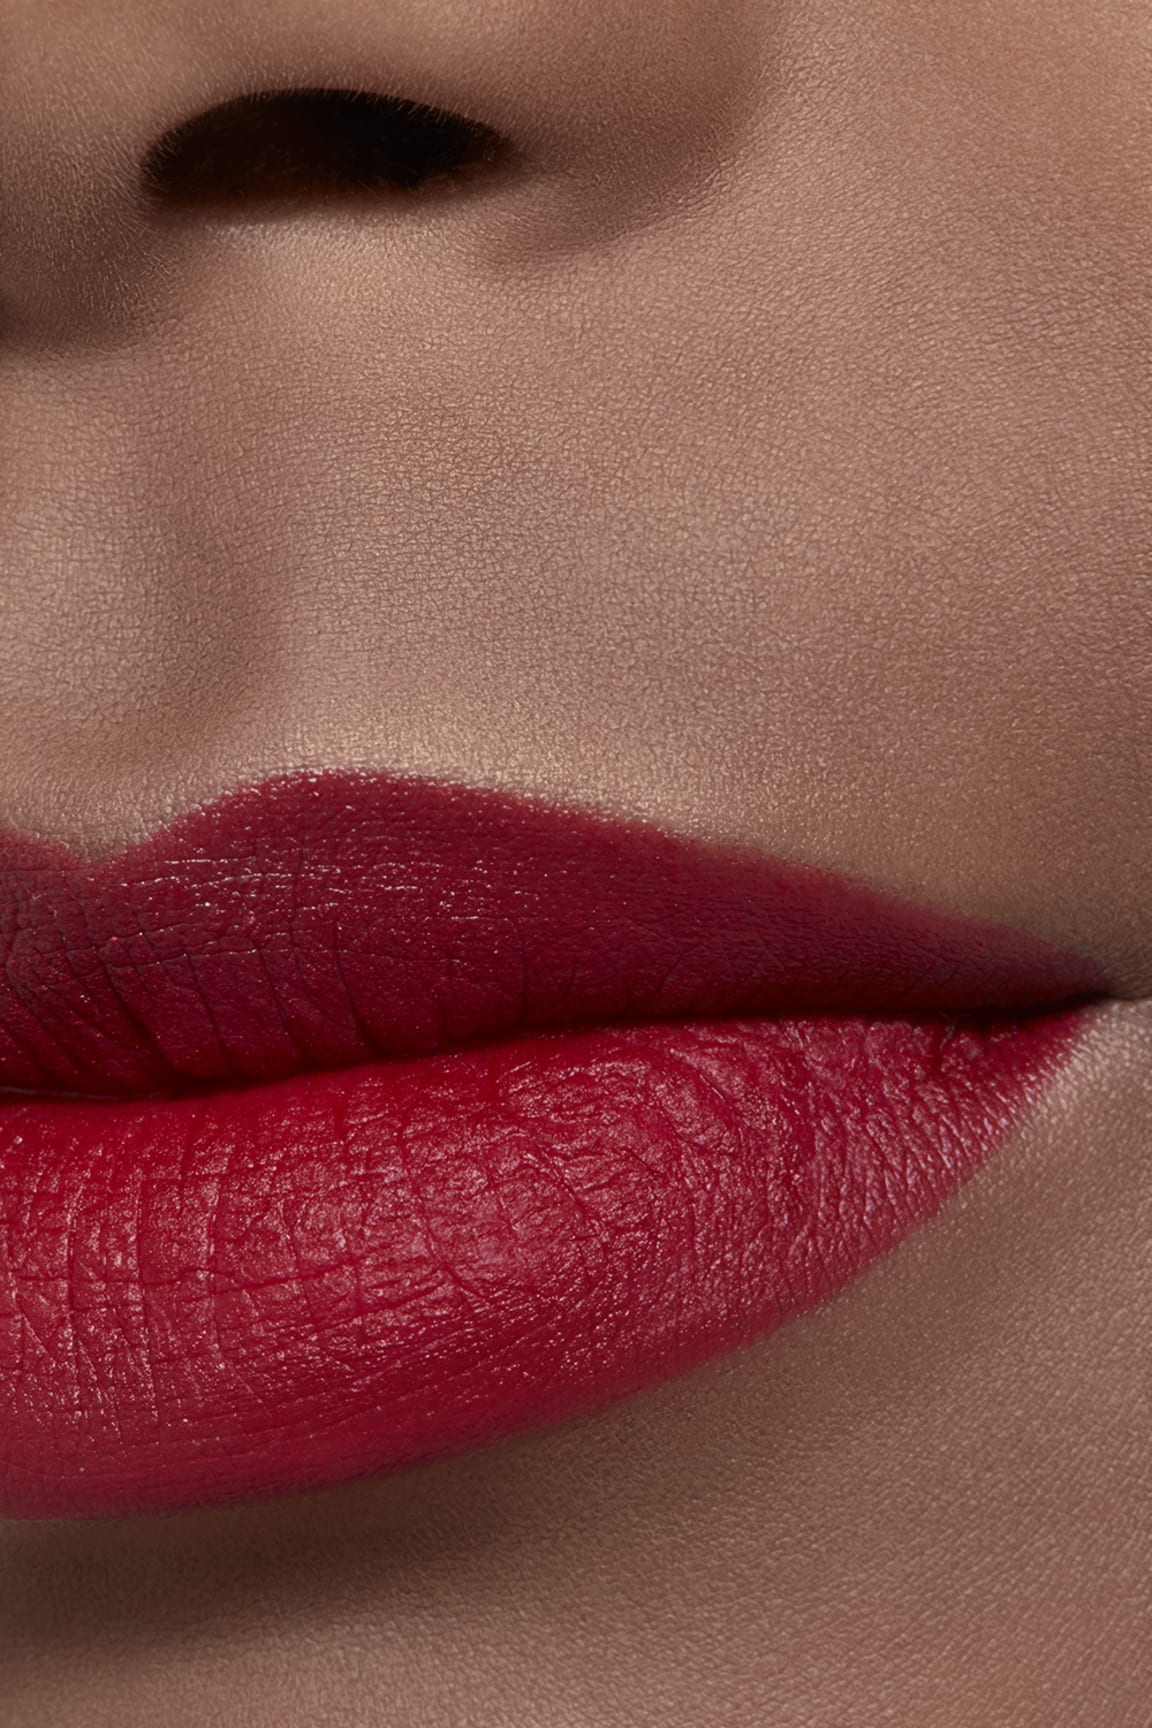 Application makeup visual 2 - ROUGE ALLURE VELVET 56 - ROUGE CHARNEL